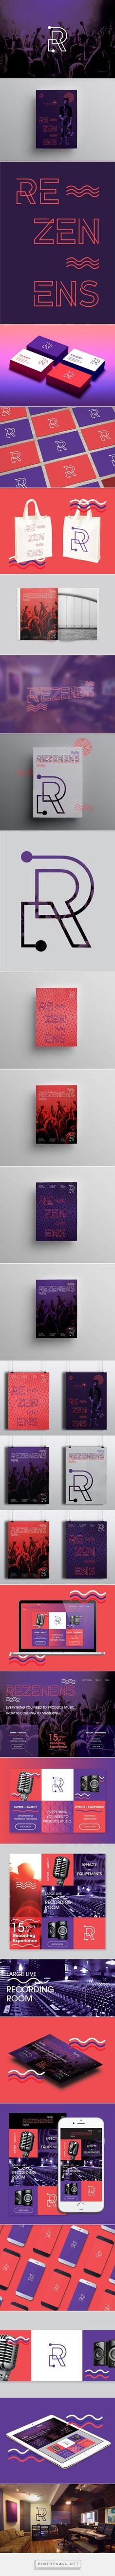 » REZENENS — Branding | Art Direction | Web Design Appears to be an Entertainer brand archetype